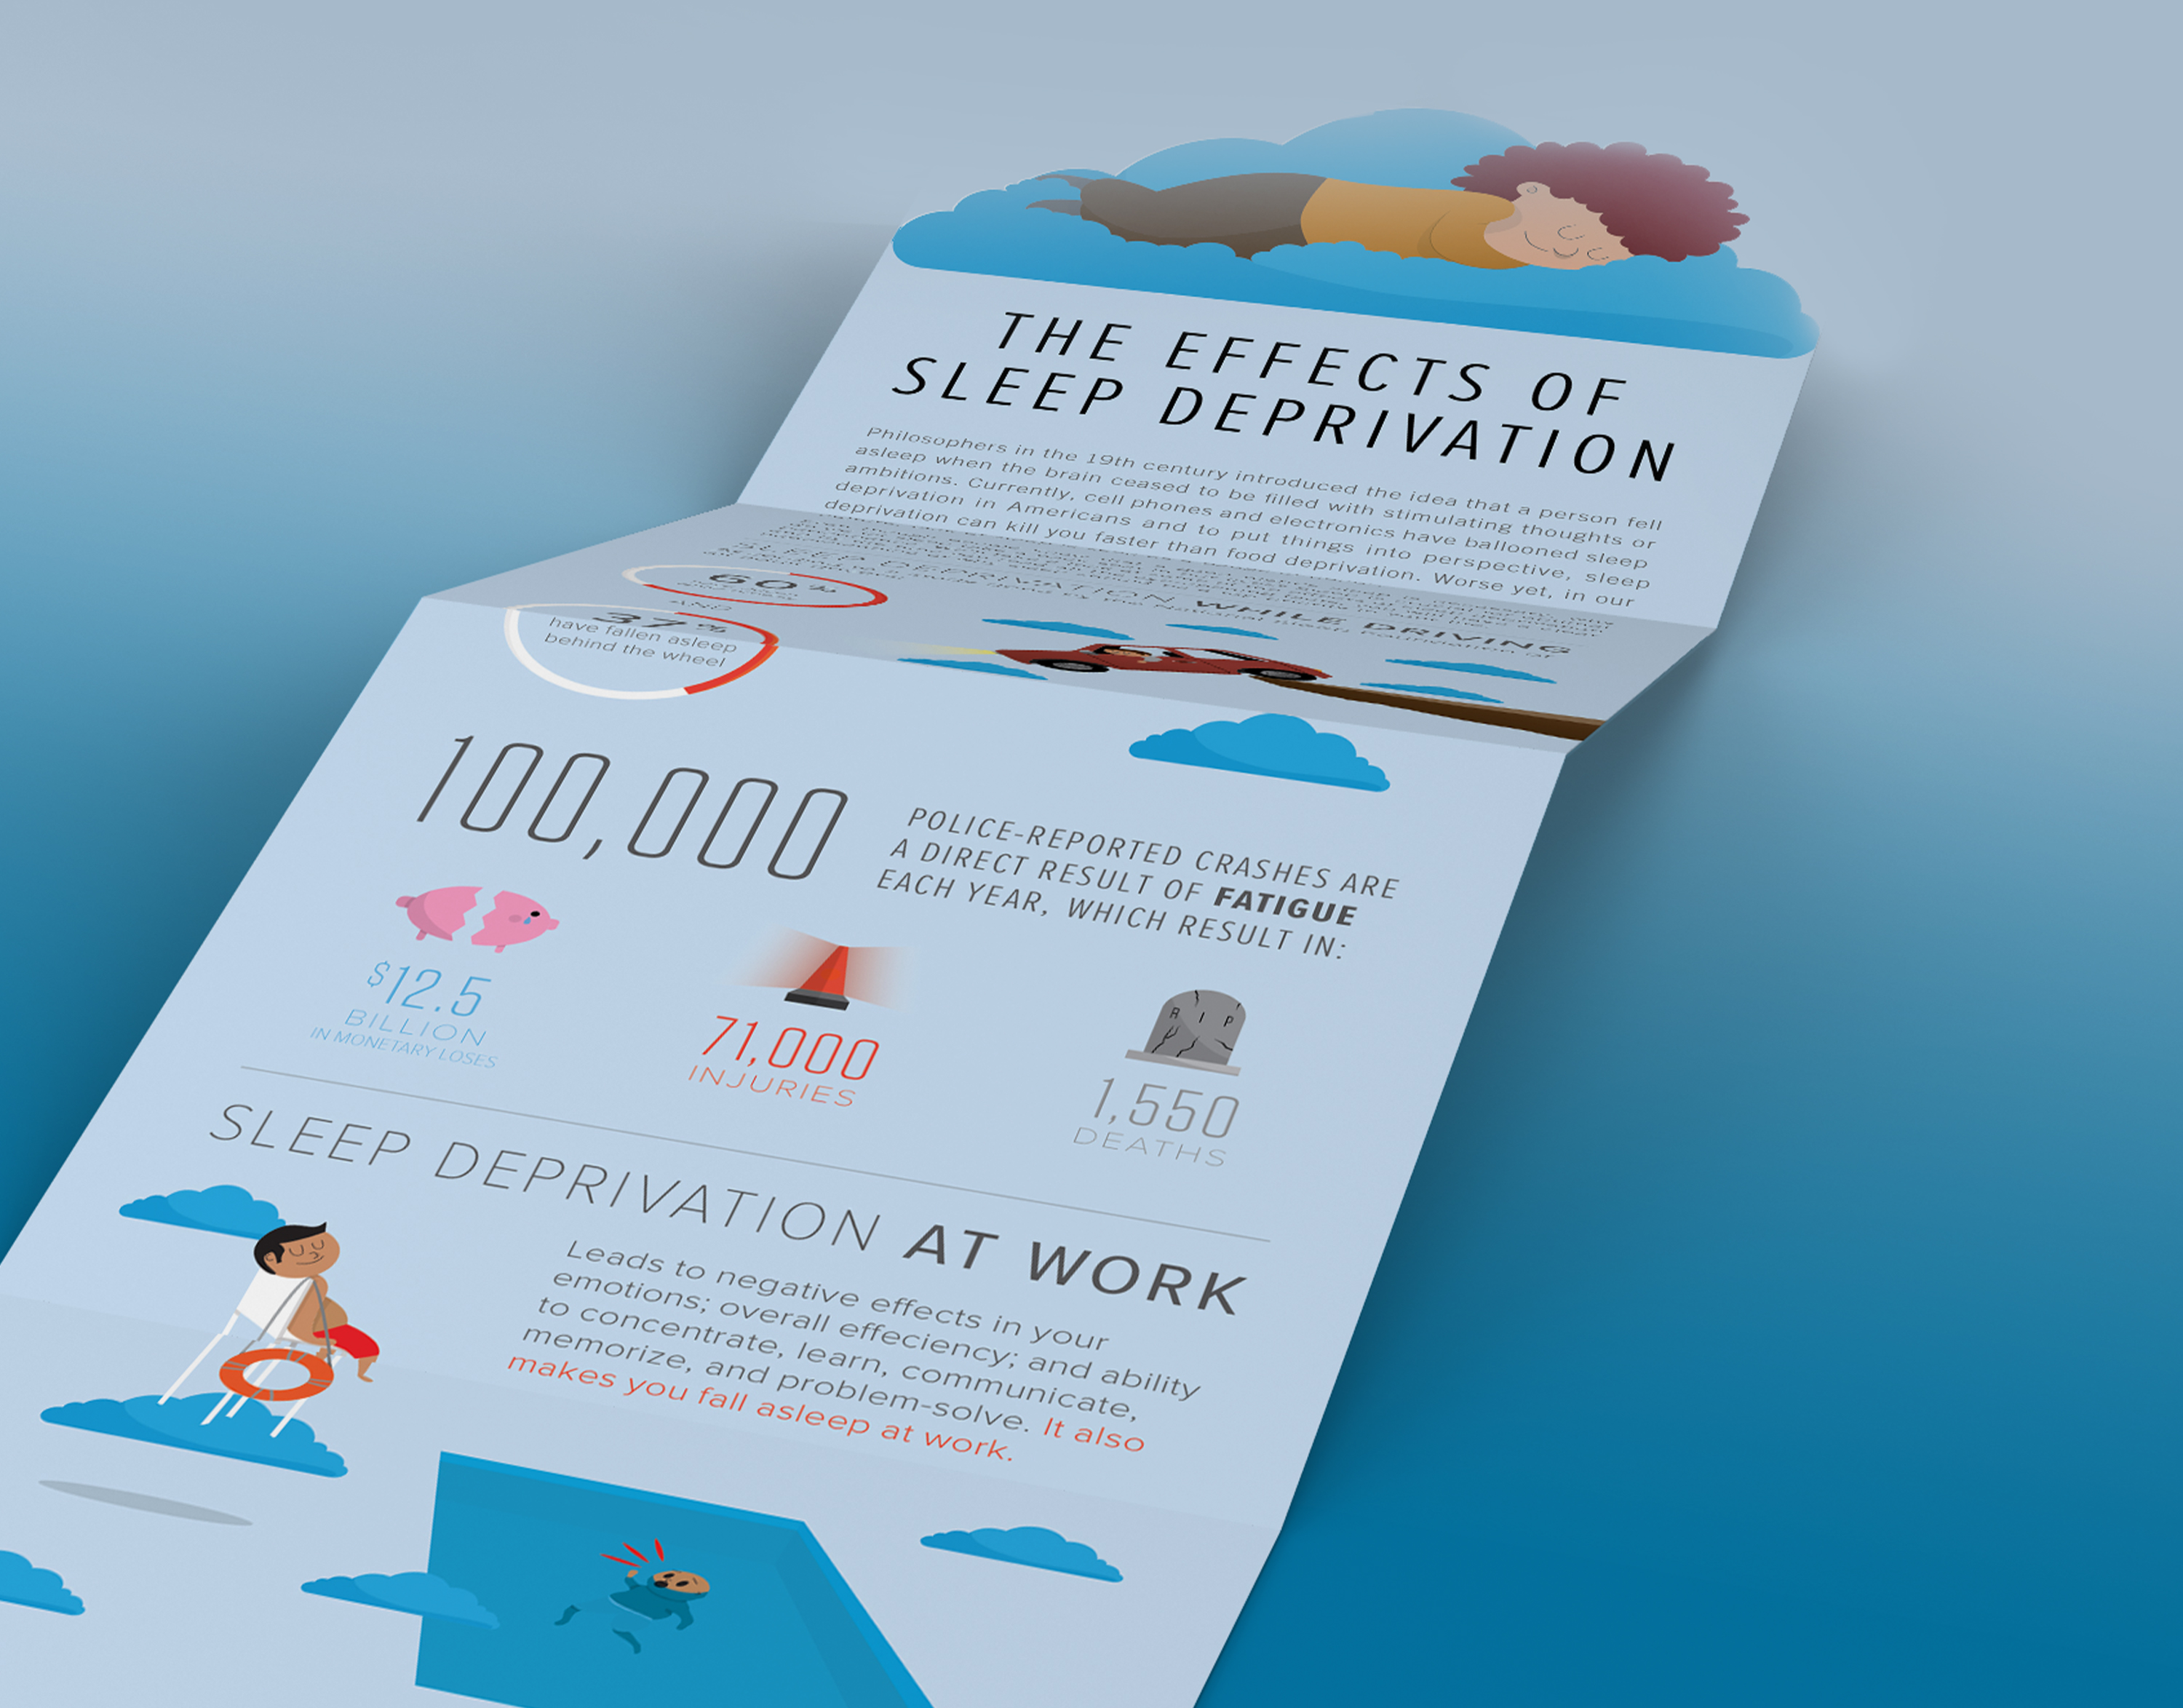 The Effects of Sleep Deprivation Infographic